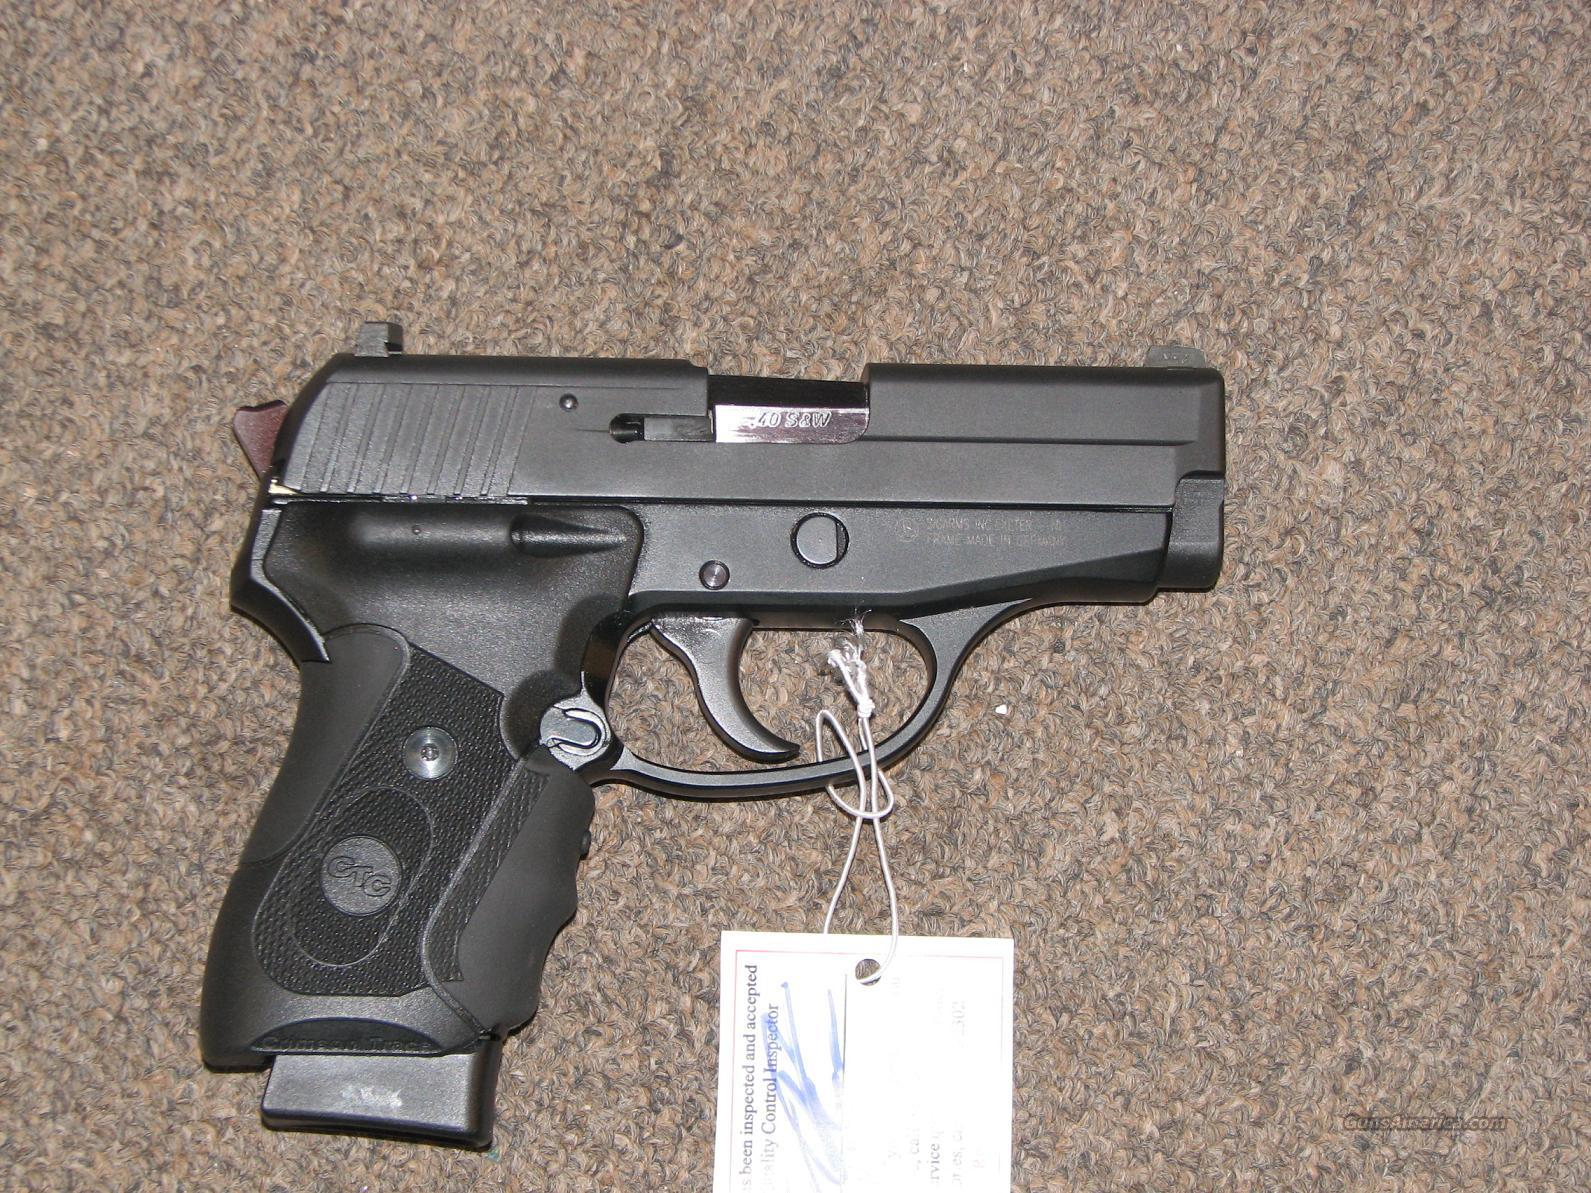 SIG SAUER P239 .40 S&W w/ CRIMSON TRACE - Like New!  Guns > Pistols > Sig - Sauer/Sigarms Pistols > P239